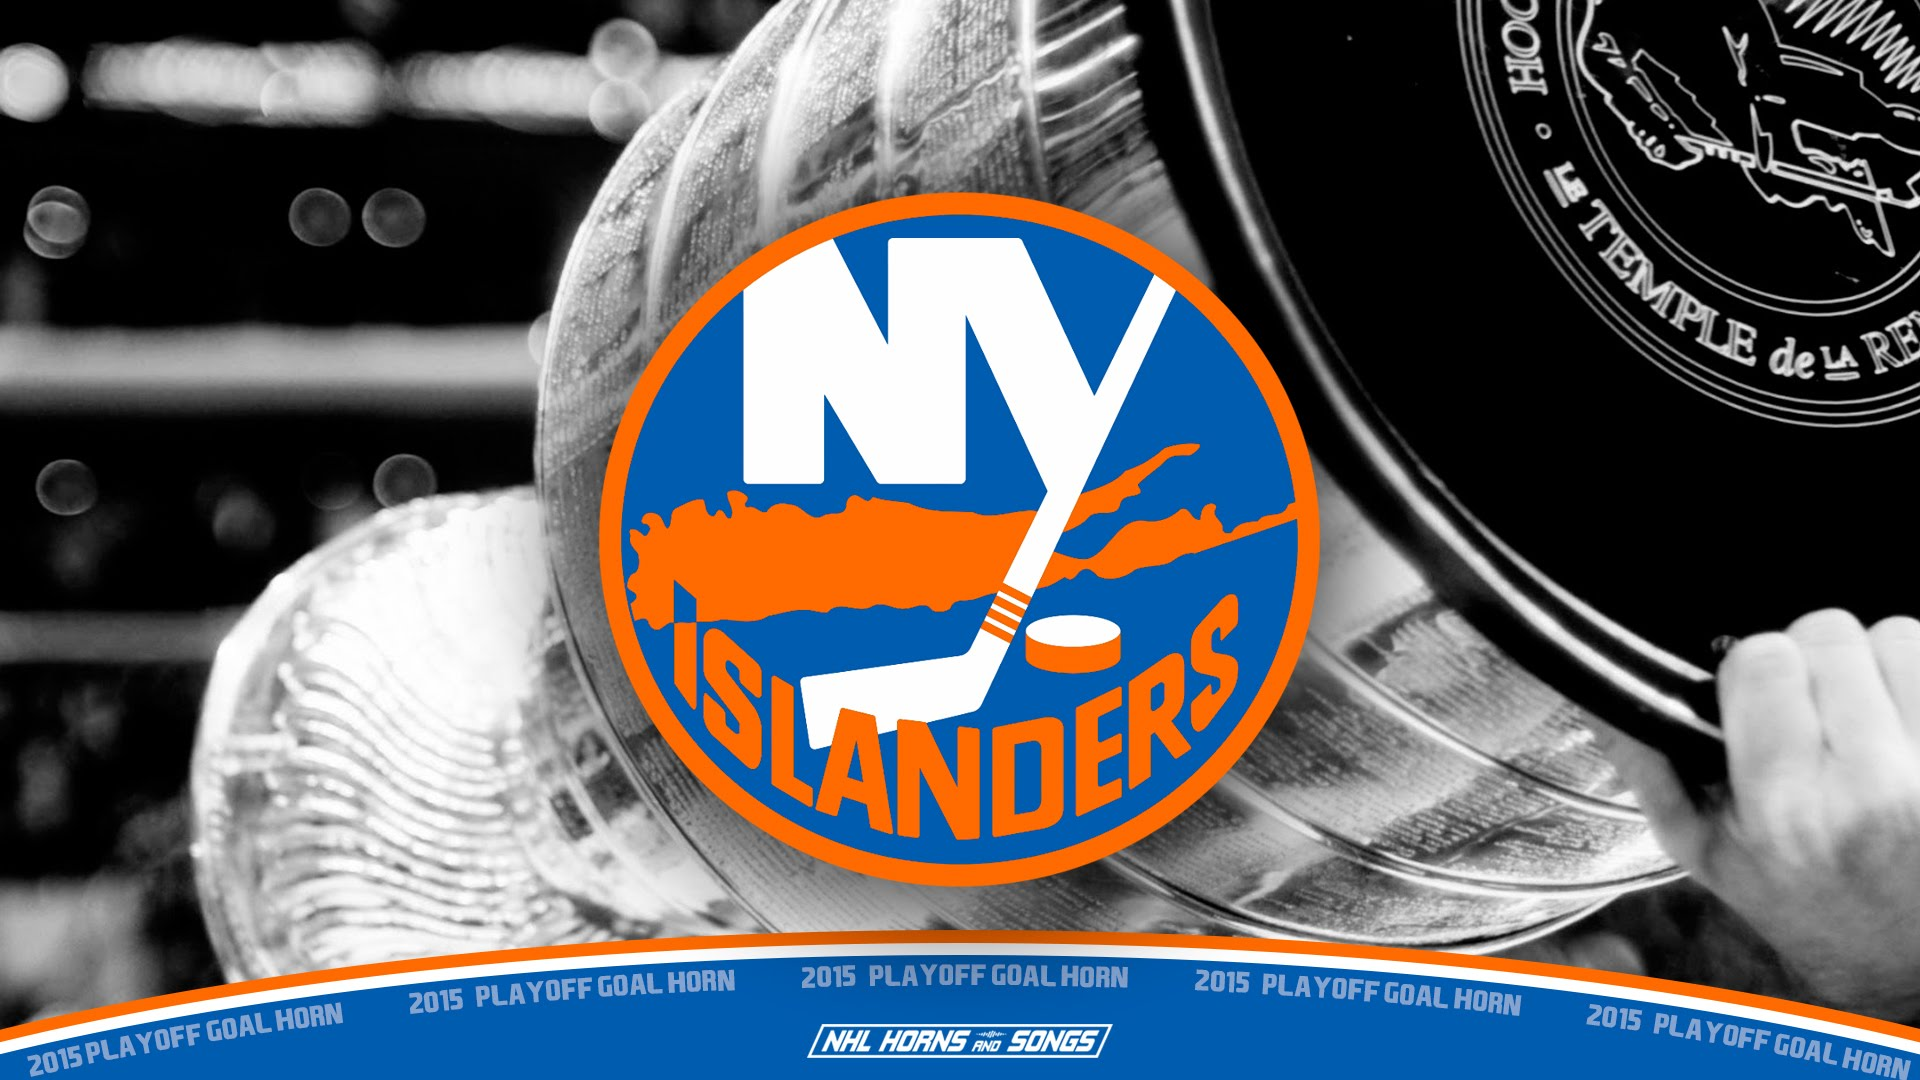 New York Islanders Wallpapers Images Wallpapers of New 1920x1080